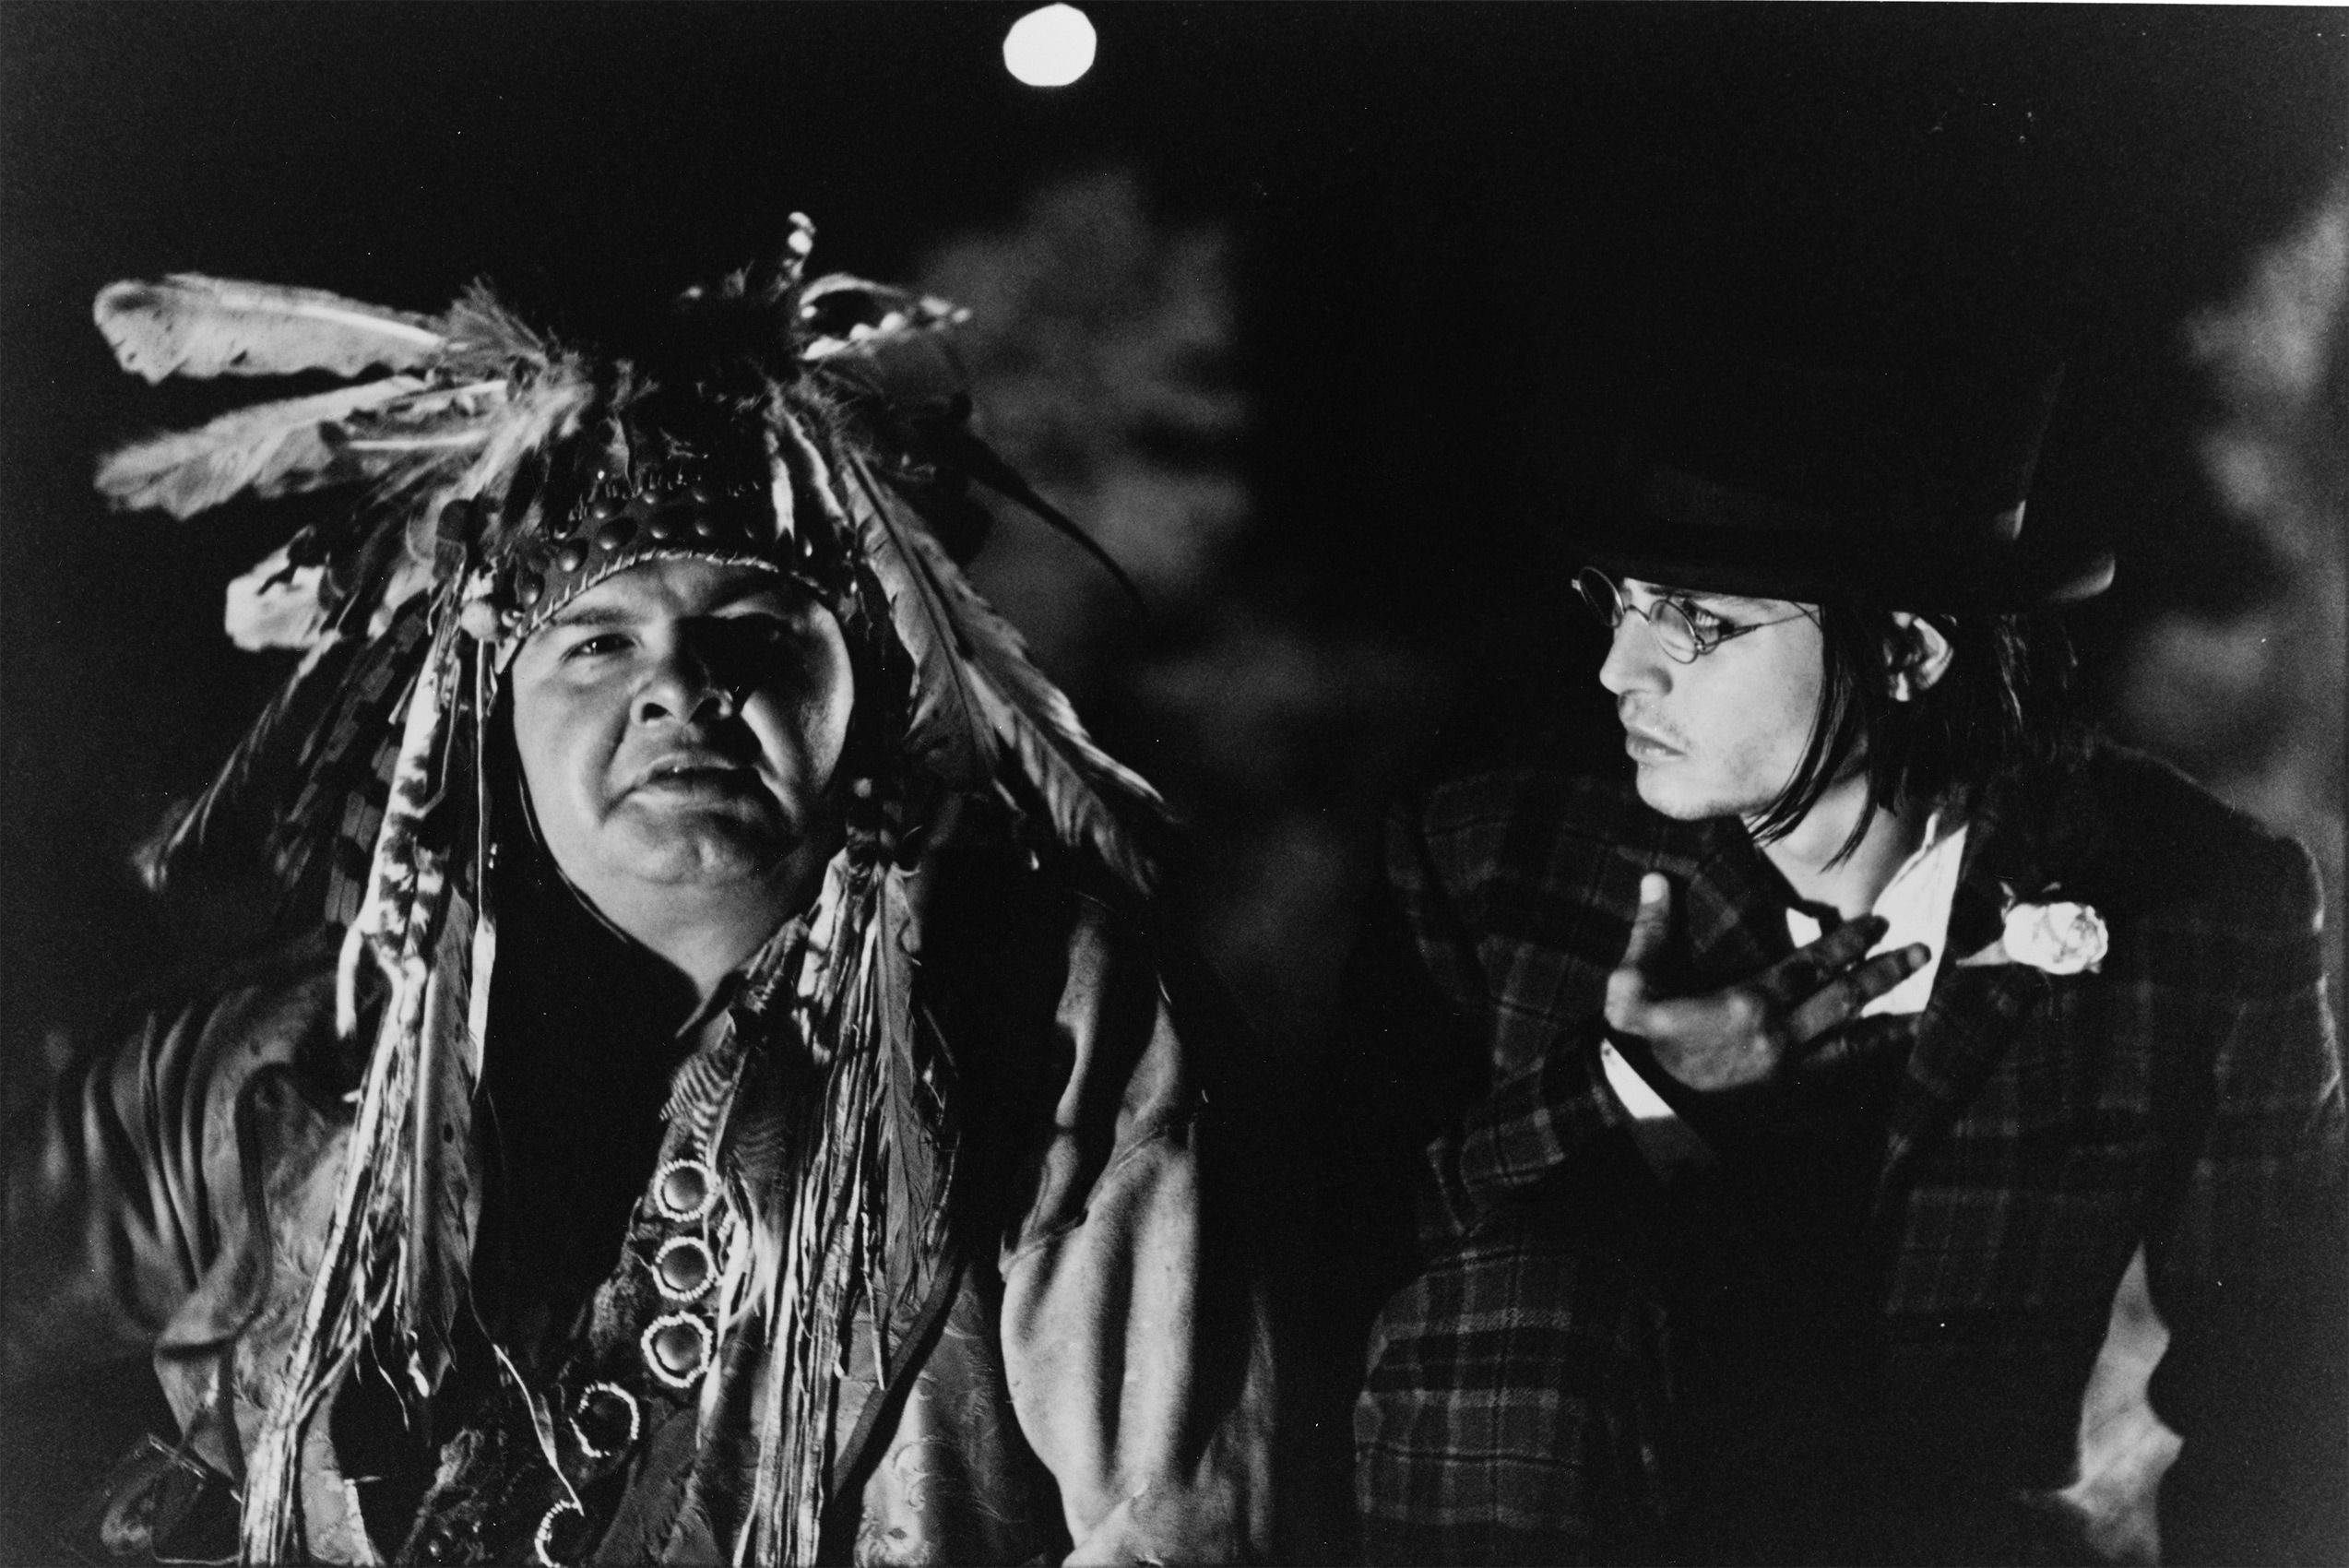 Gary Farber and Johnny Depp in Dead Man